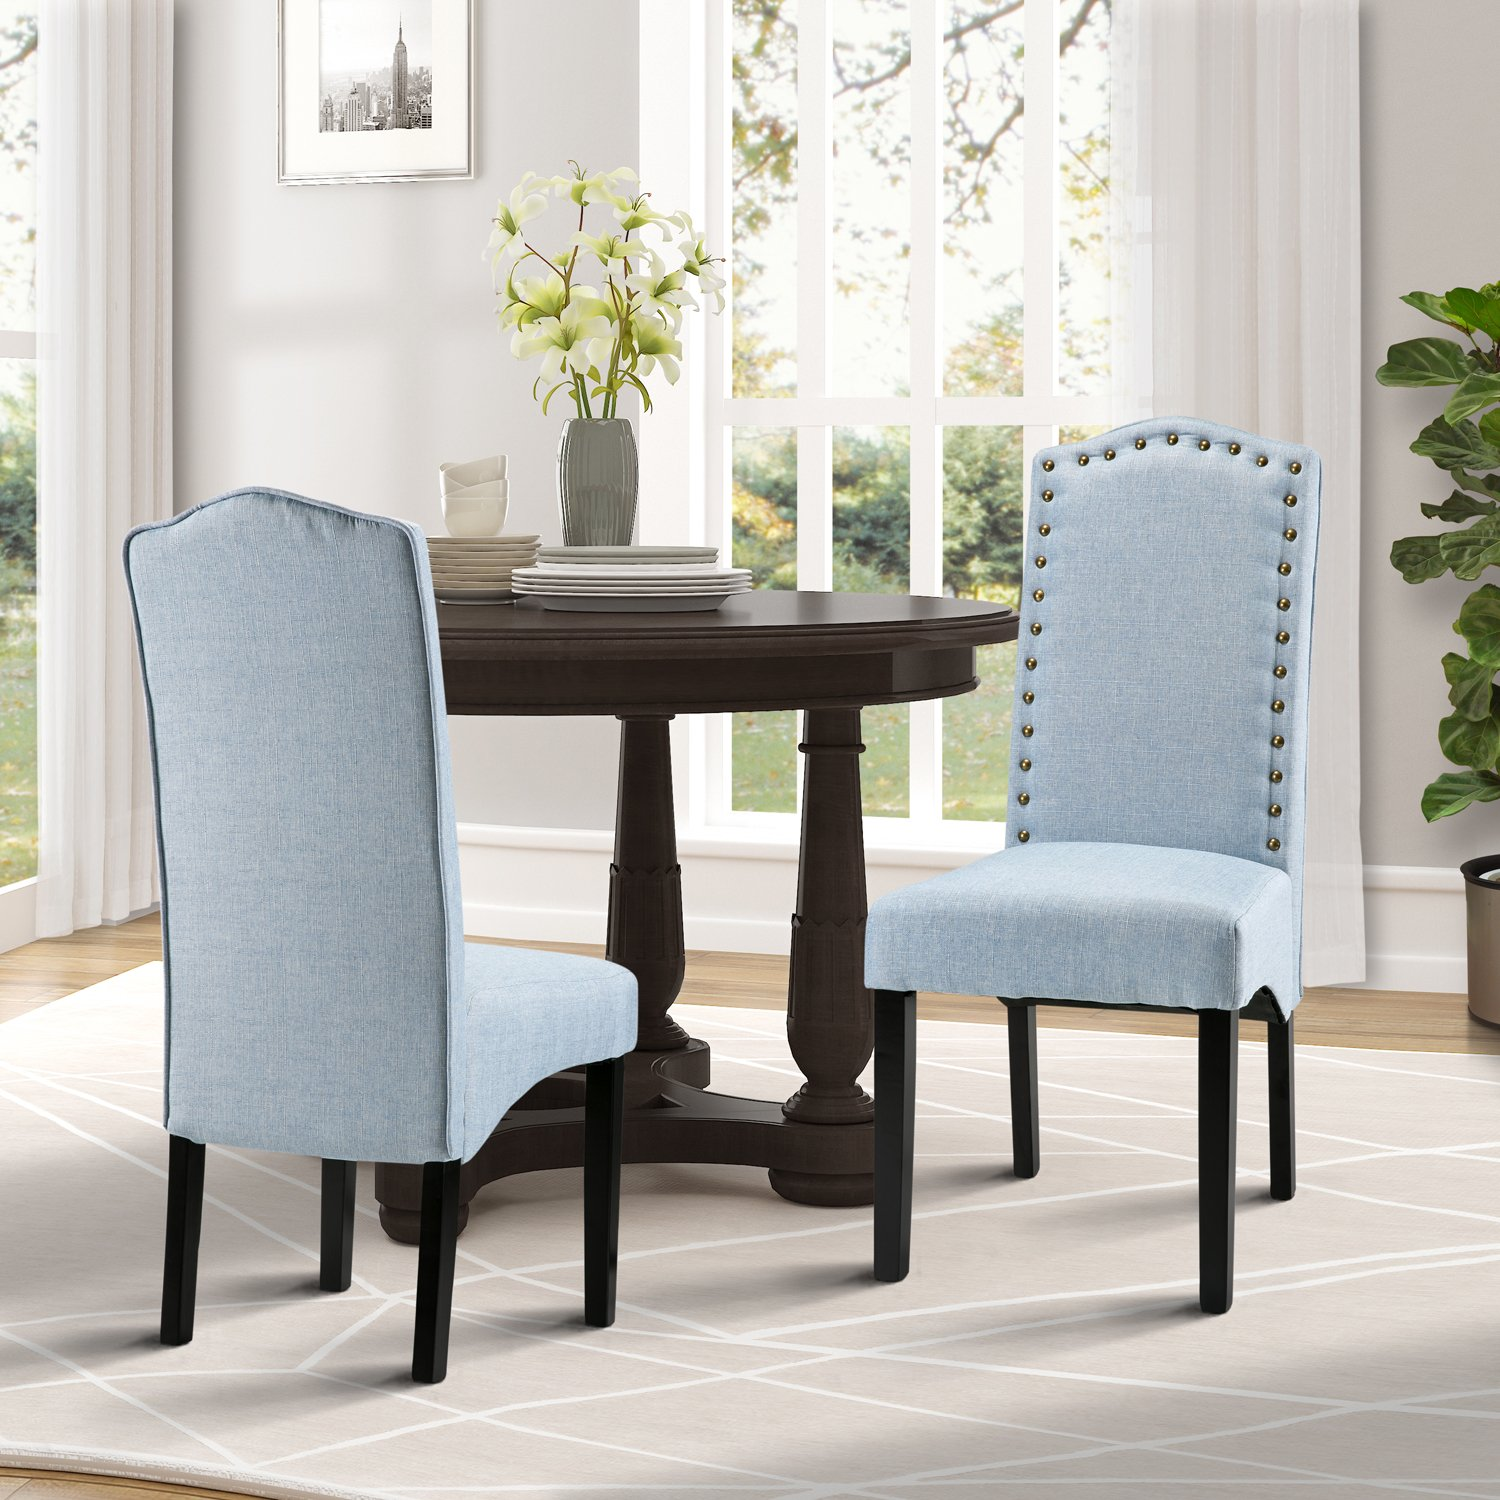 merax fabric accent chair dining room with solid chairs for table wood legs set light blue walnut bedside small patio target end tables and coffee outdoor umbrella living chest